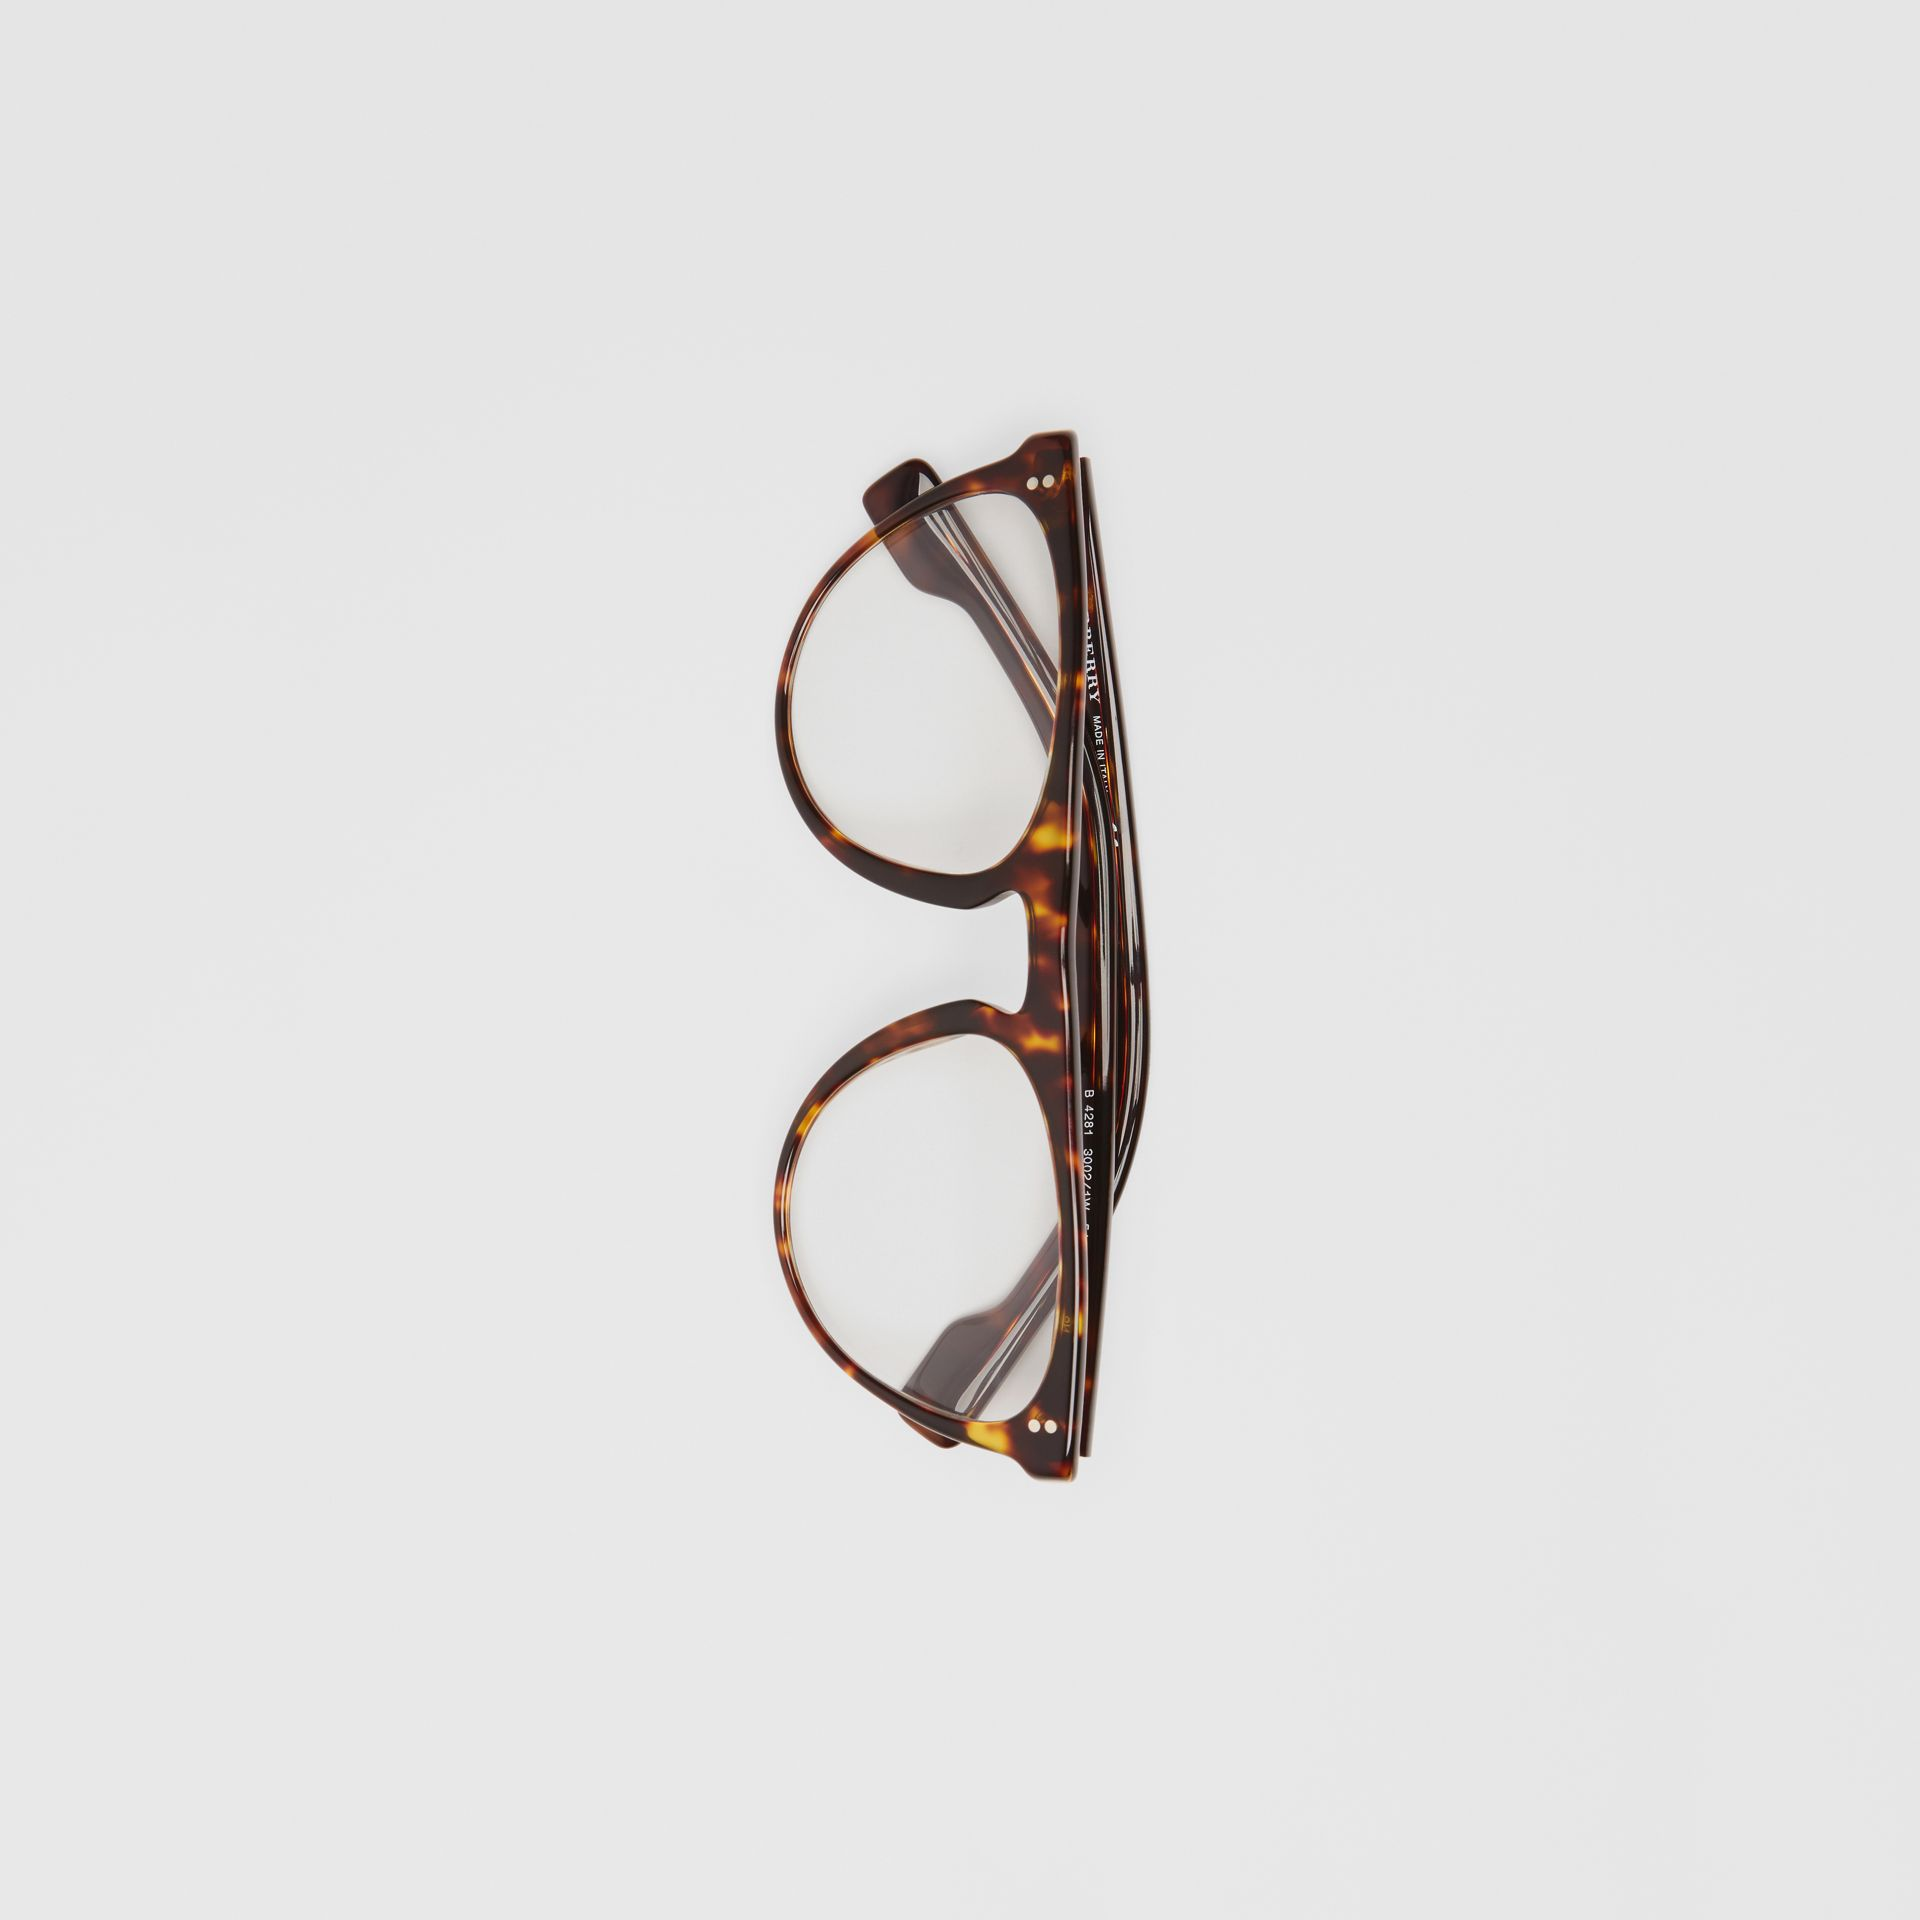 Keyhole D-shaped Optical Frames in Tortoise Shell - Men | Burberry United Kingdom - gallery image 3